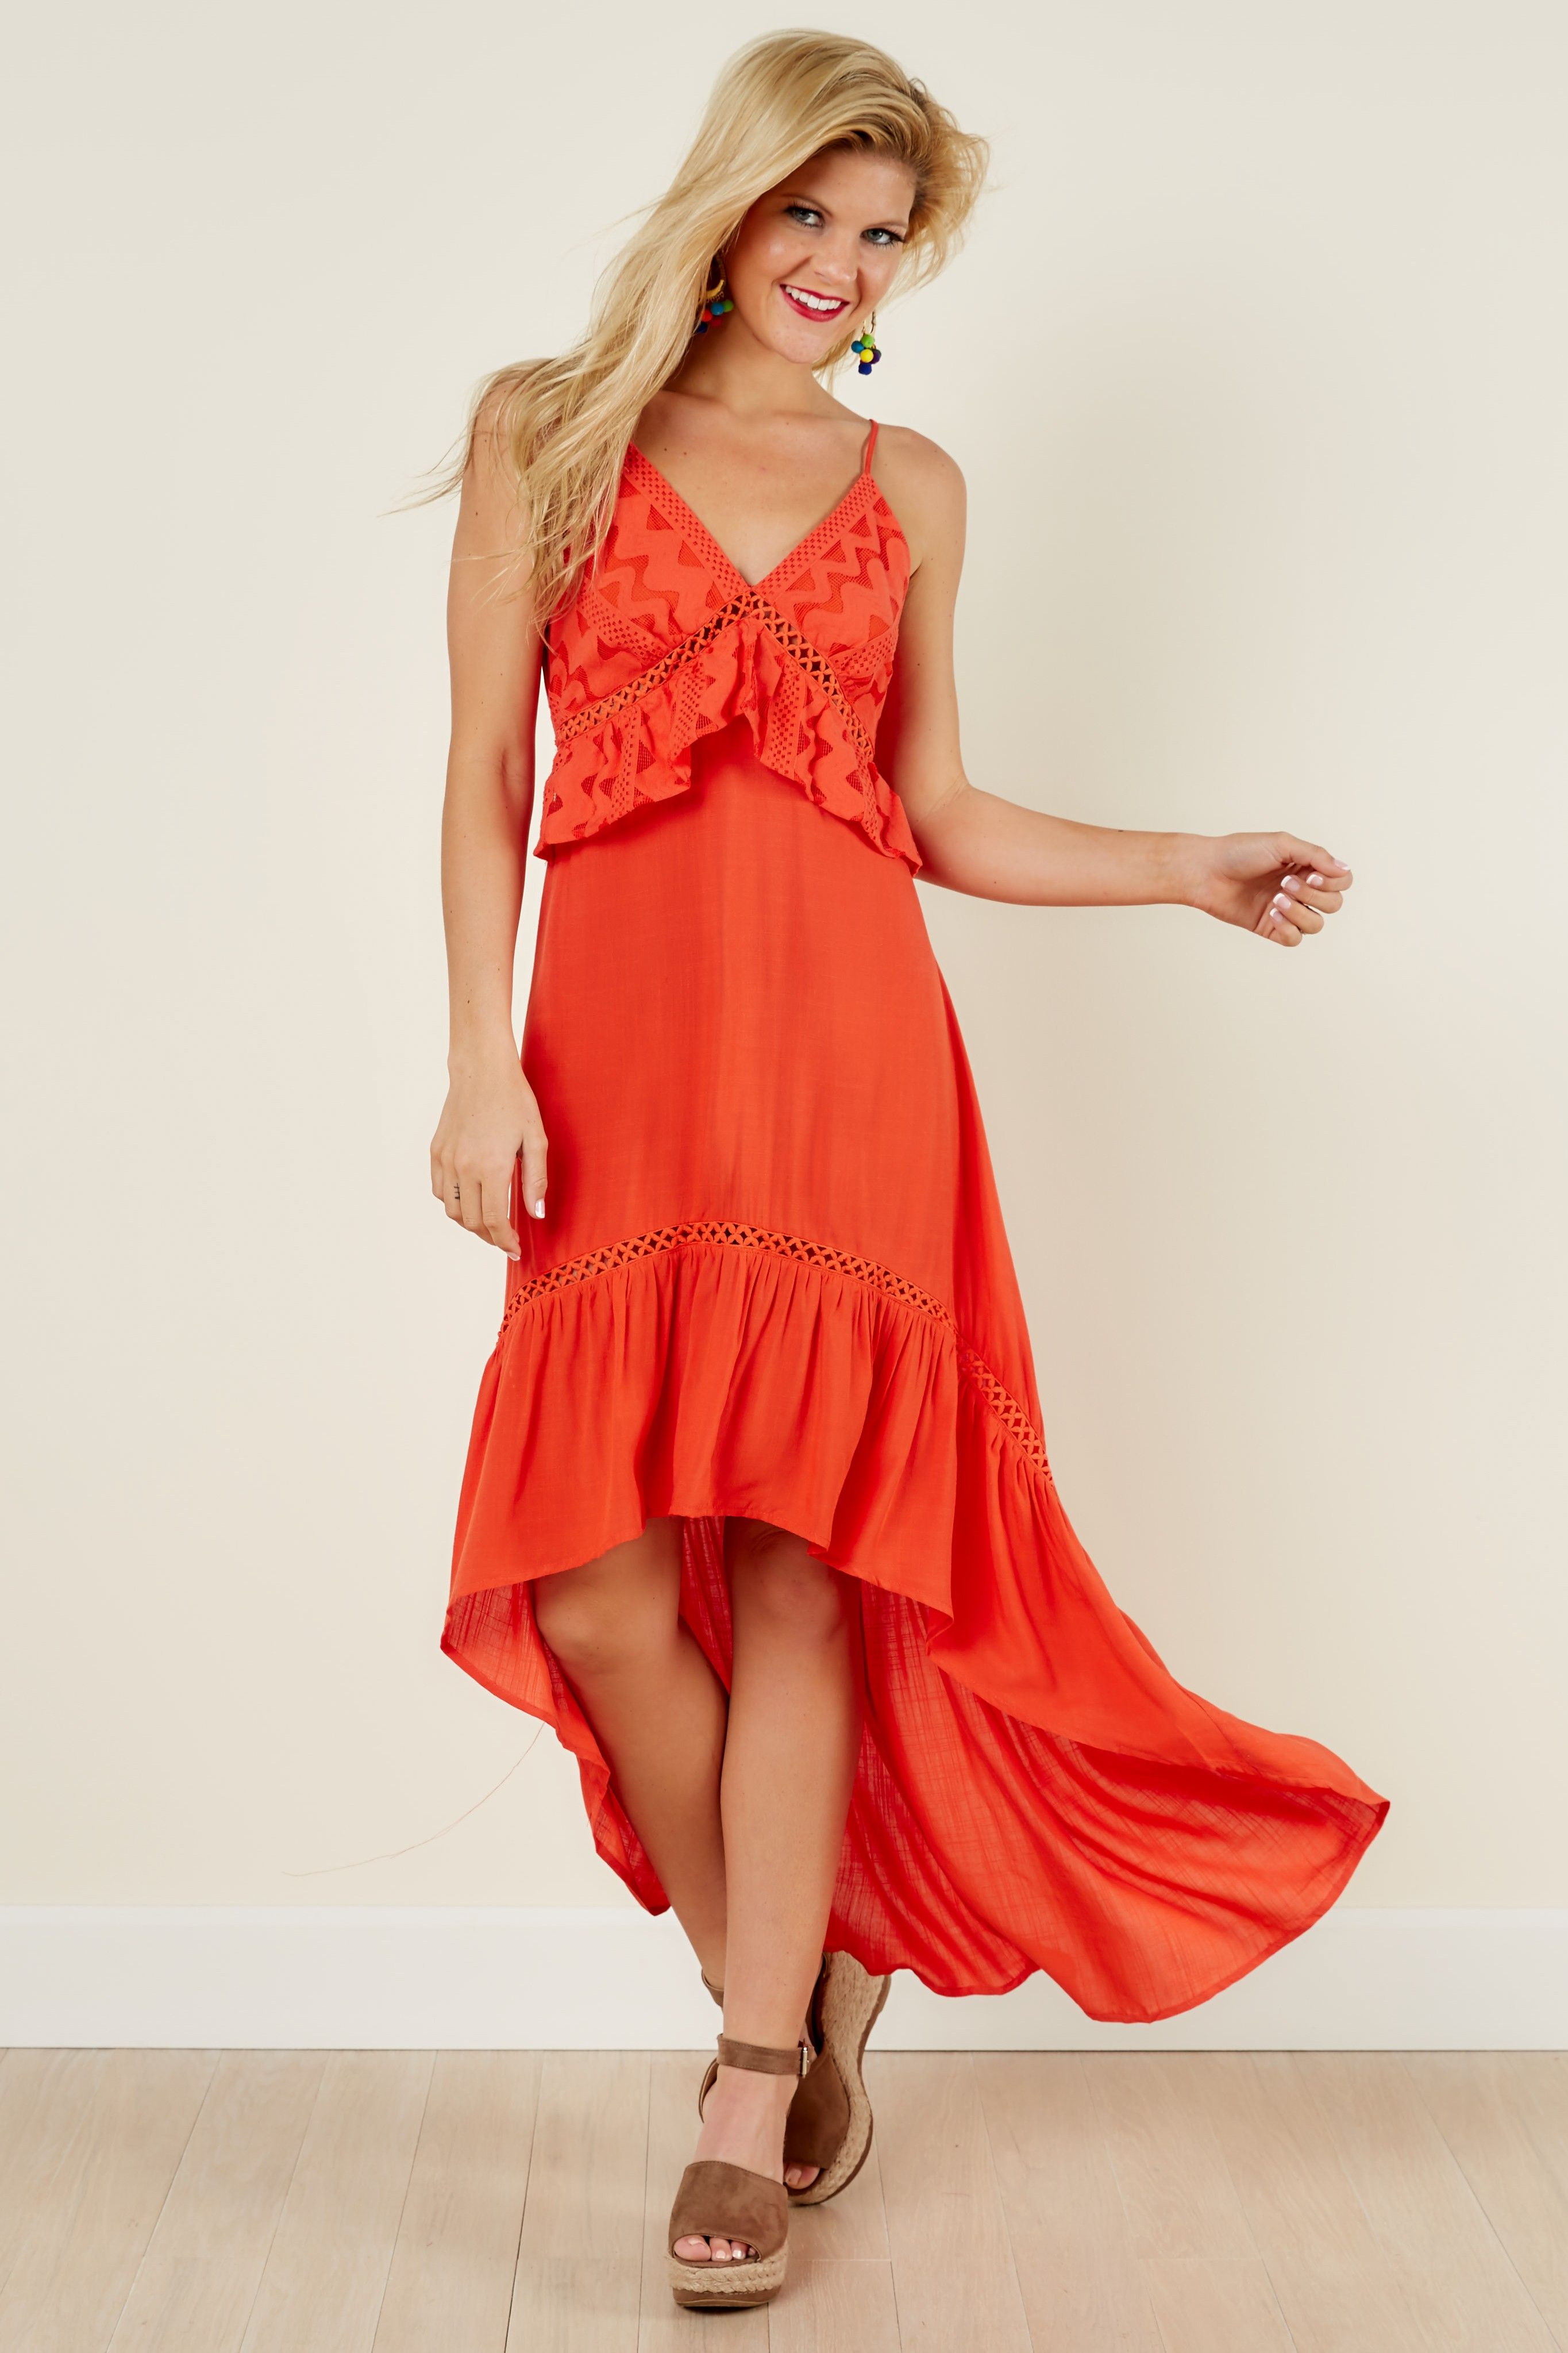 Such a cute summer dress adore the color and style never enough